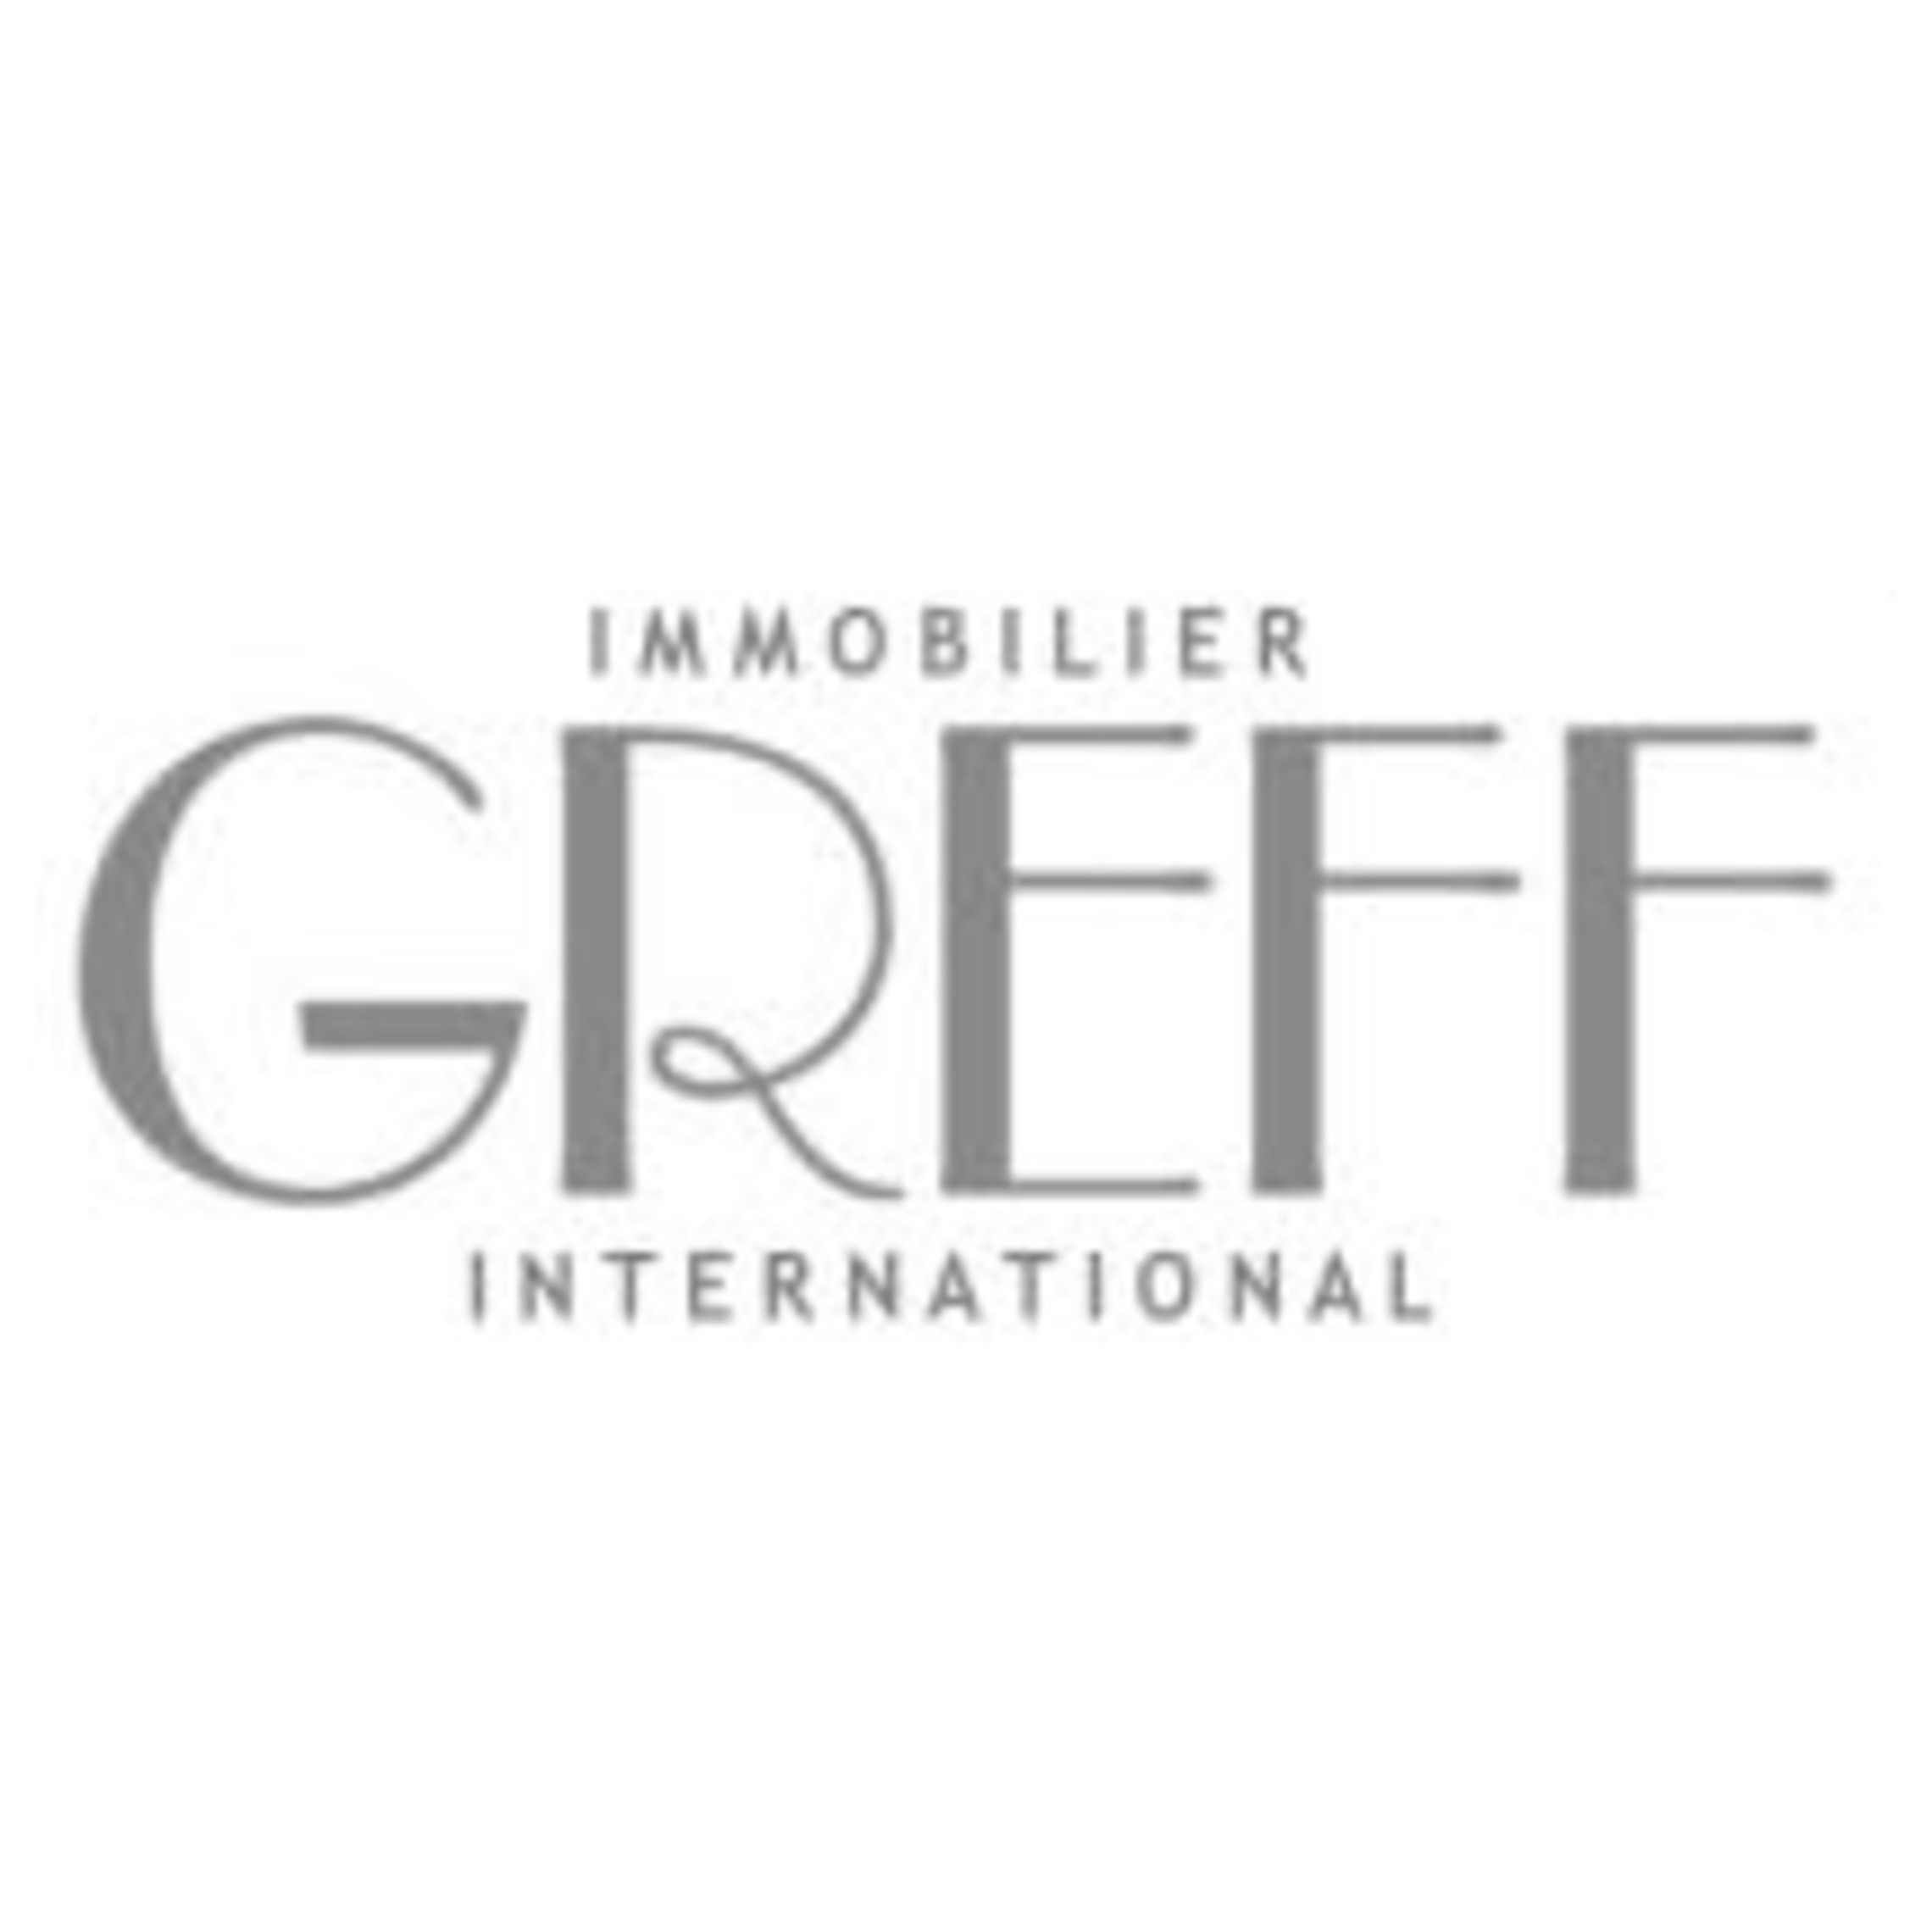 greff international- company logo